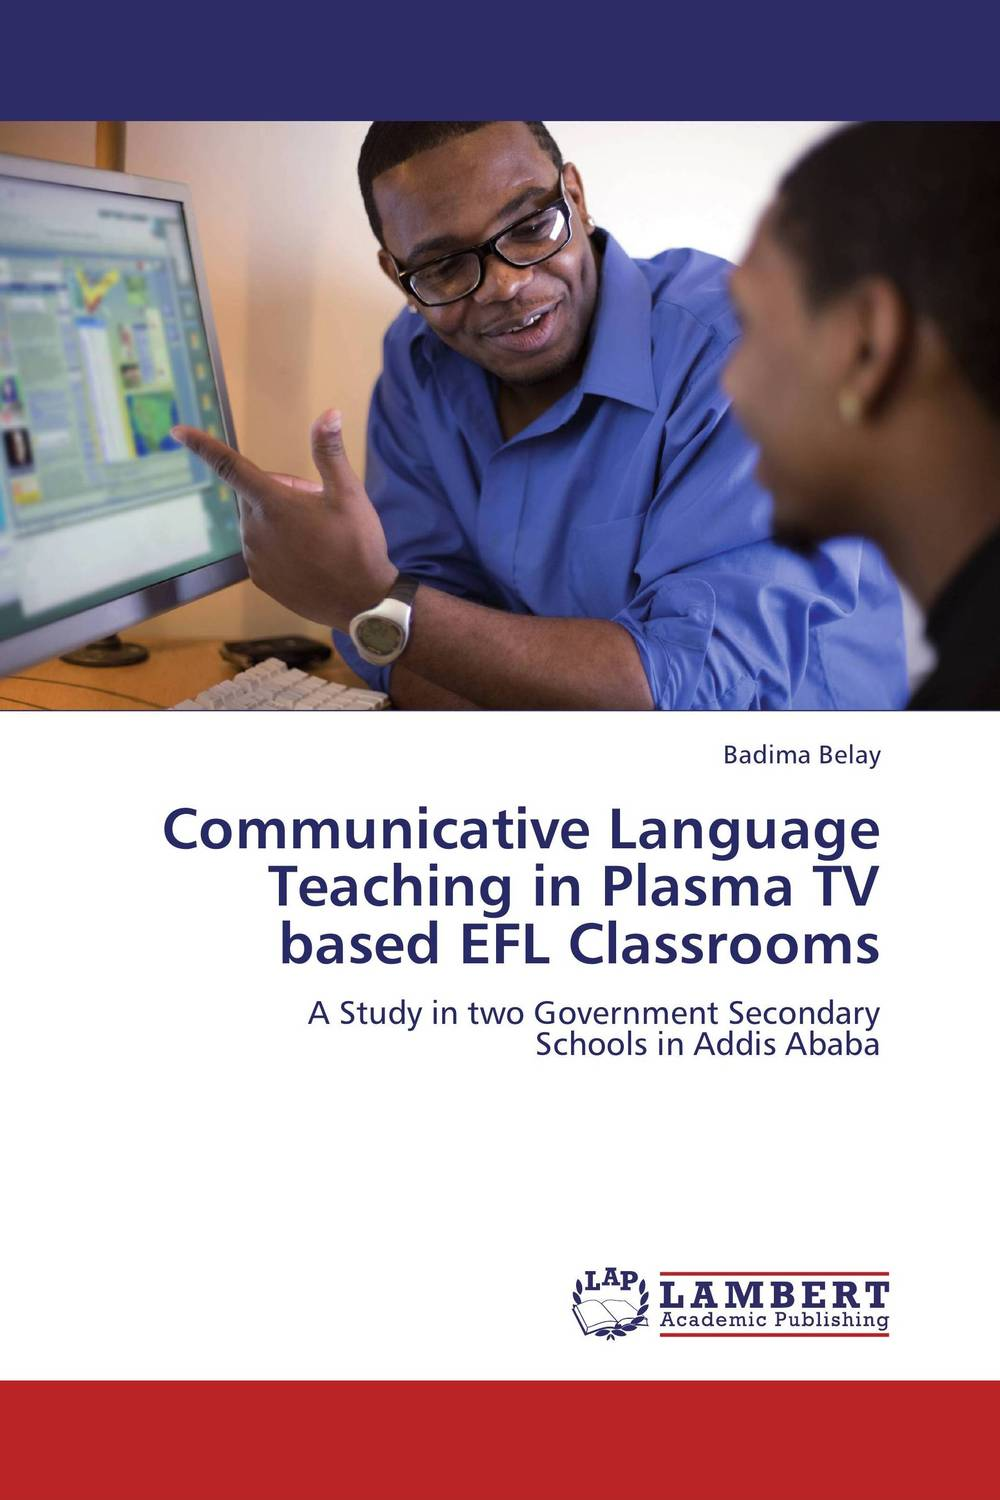 Communicative Language Teaching in Plasma TV based EFL Classrooms an outline of communicative language teaching in bangladesh